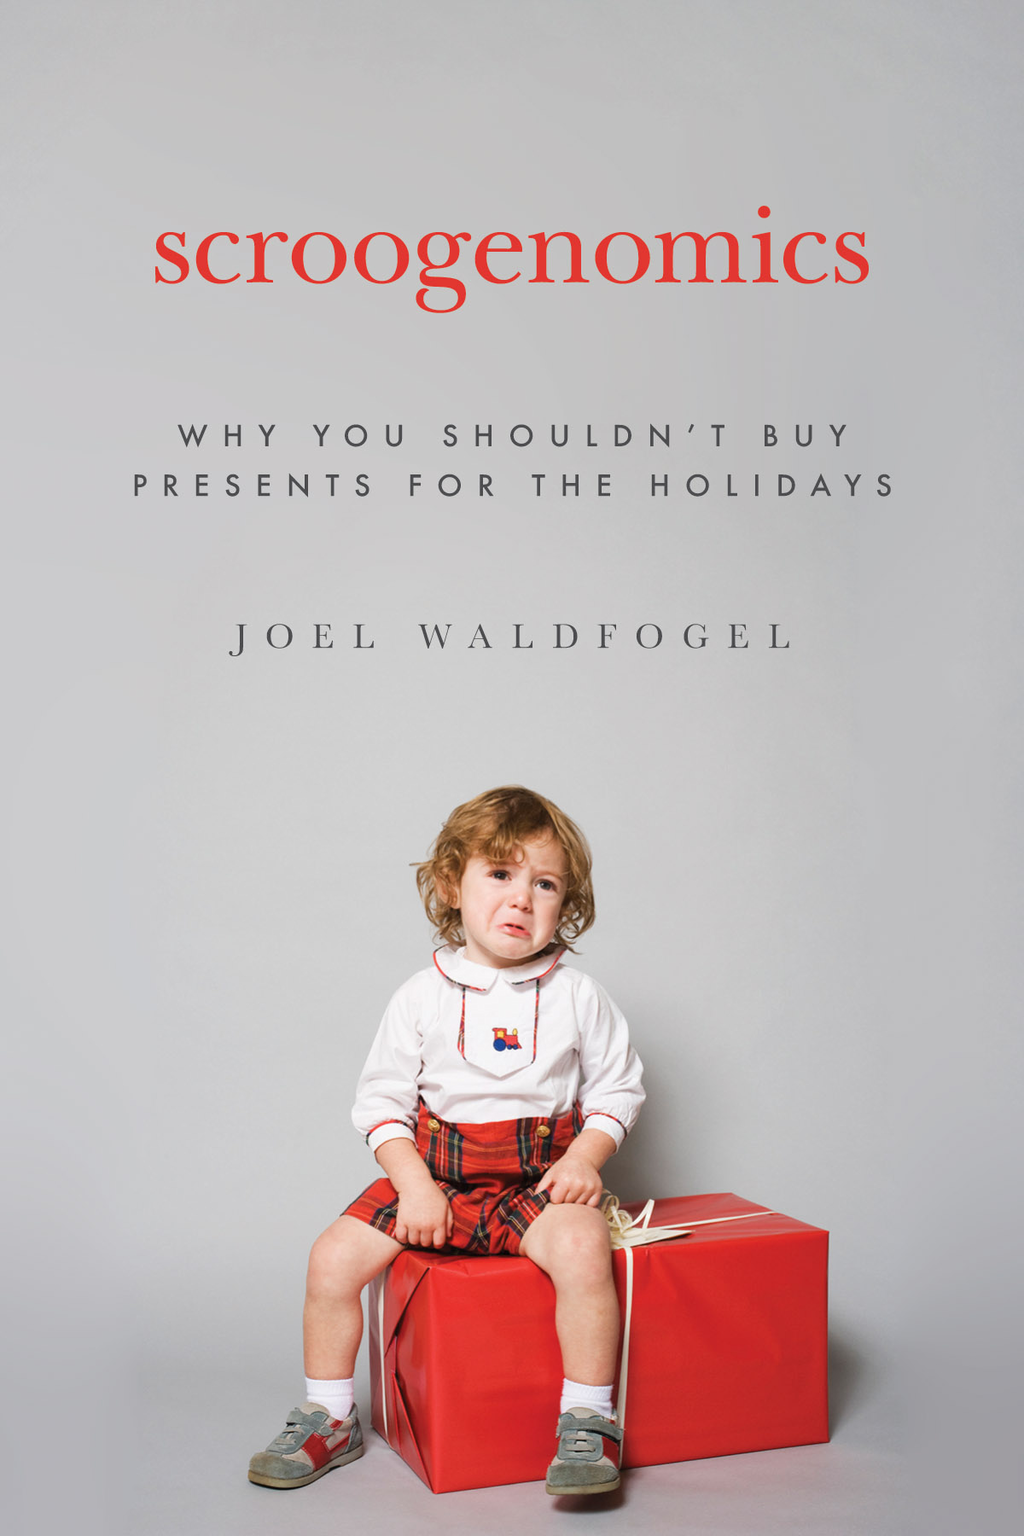 Scroogenomics By: Joel Waldfogel